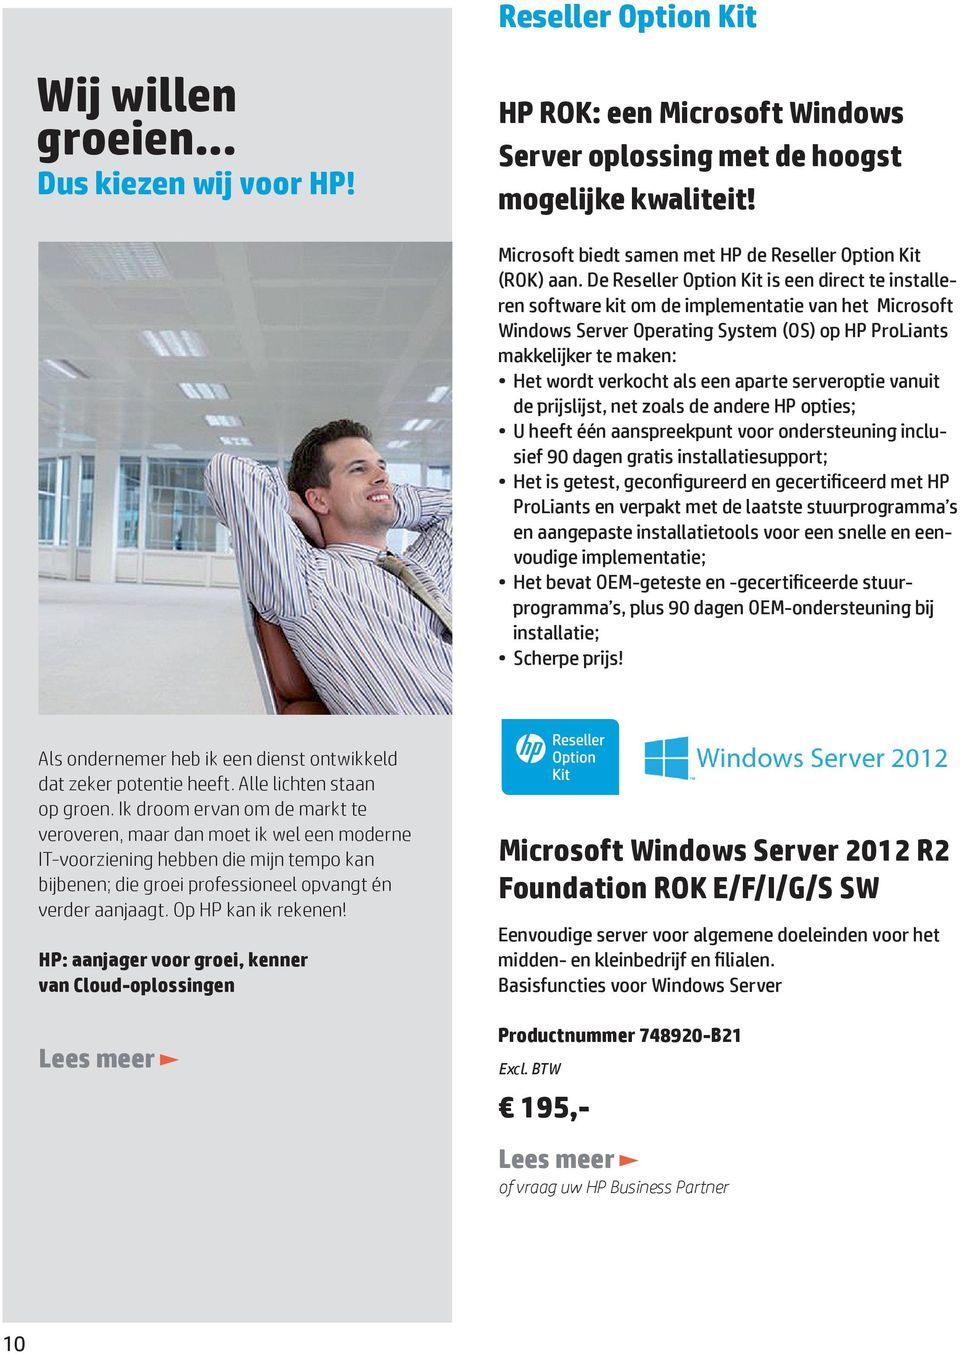 De Reseller Option Kit is een direct te installeren software kit om de implementatie van het Microsoft Windows Server Operating System (OS) op HP ProLiants makkelijker te maken: Het wordt verkocht